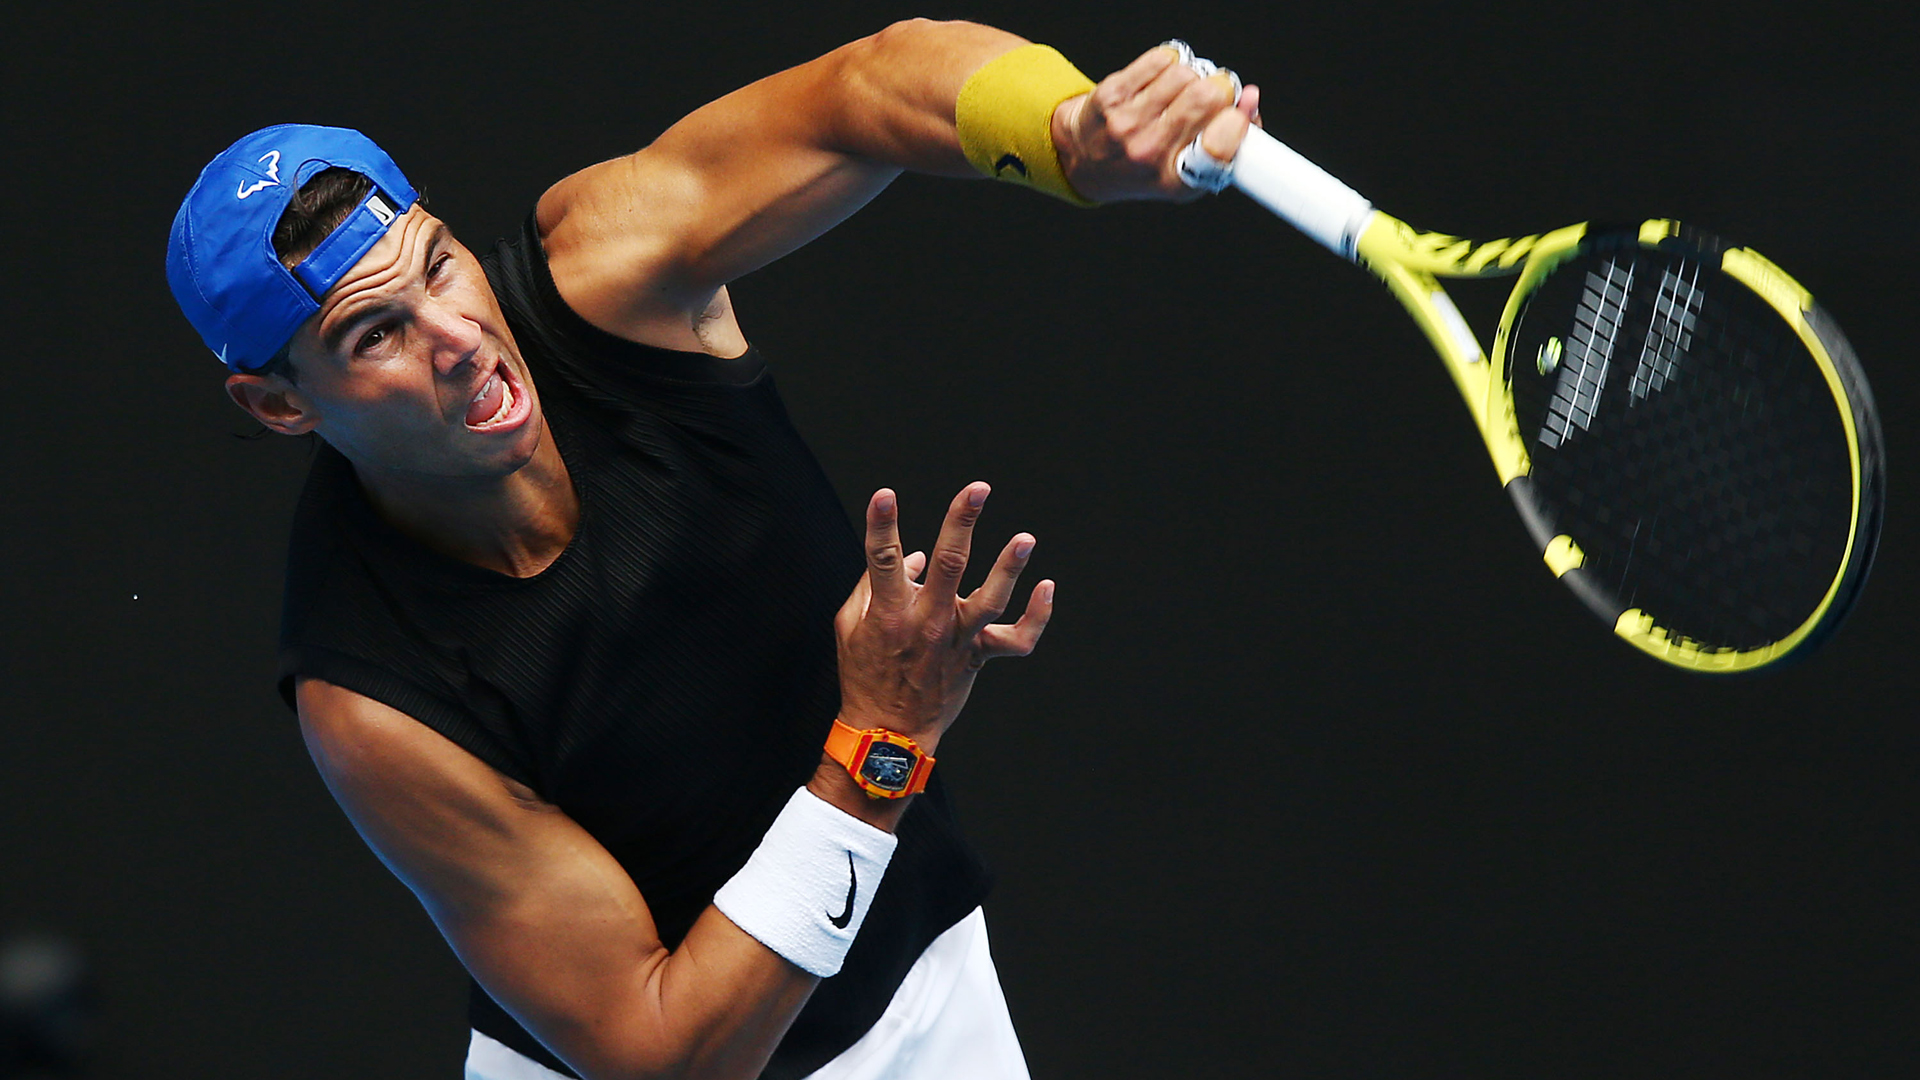 Ahead of the Australian Open, Rafael Nadal played down worries over his fitness and talked about his new serve.